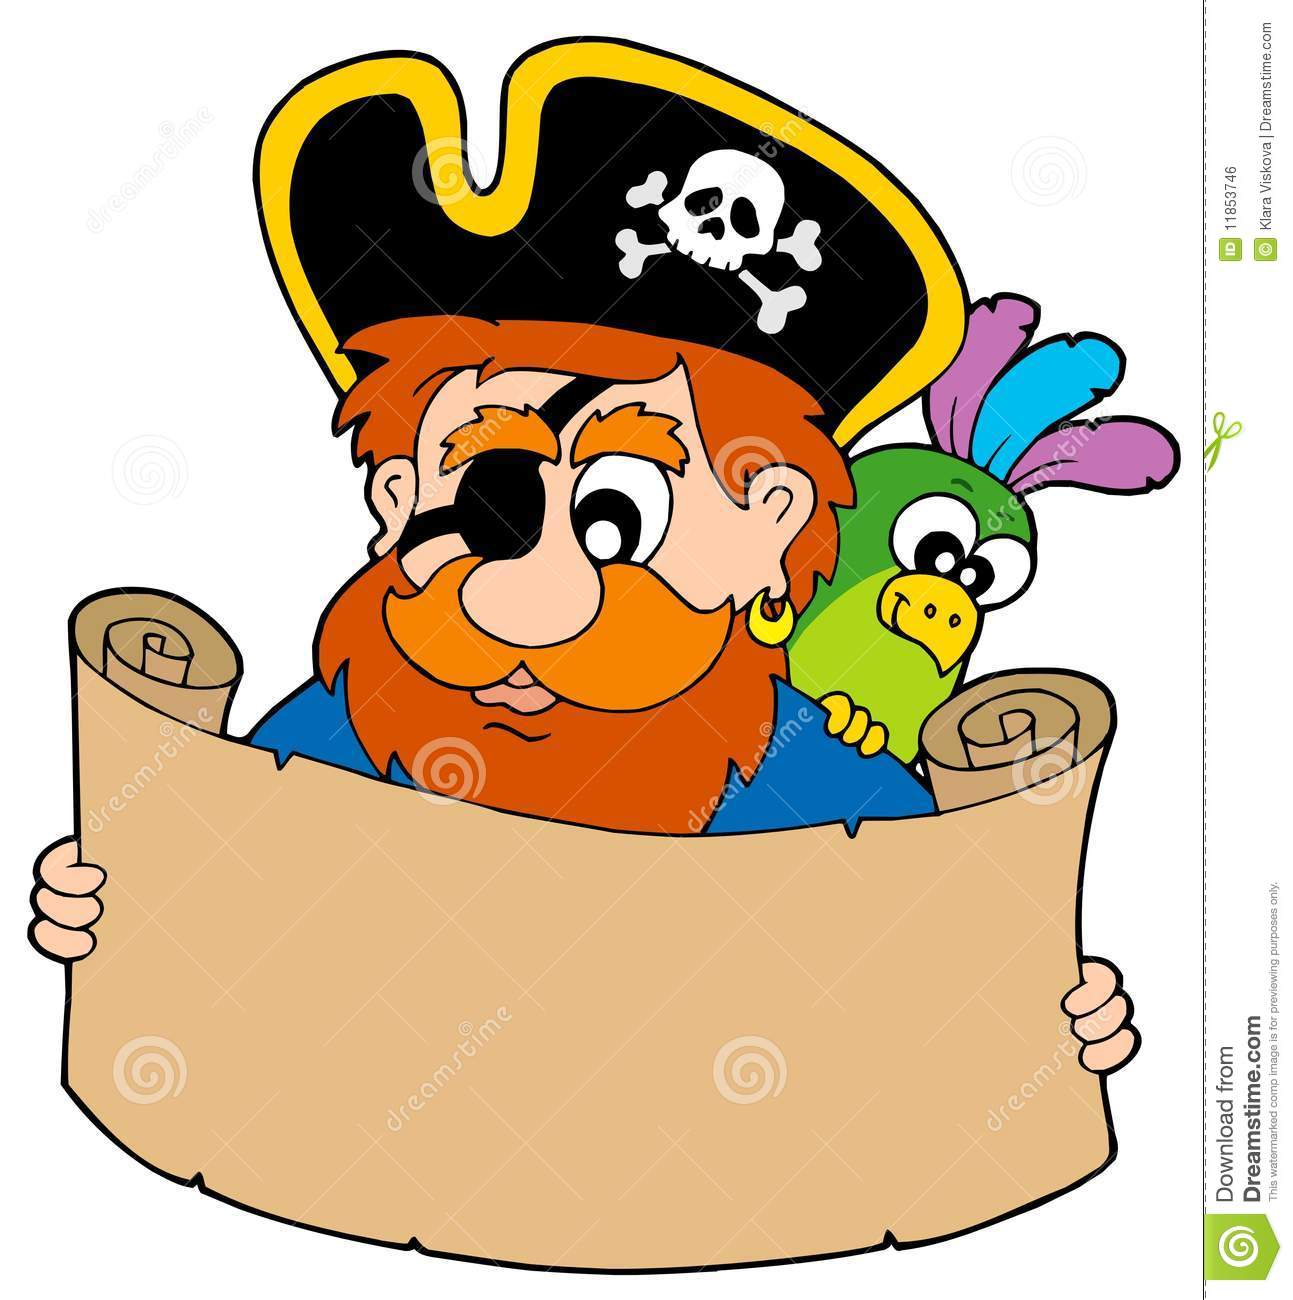 Pirate Reading Treasure Map Royalty Free Stock Image - Image: 11853746